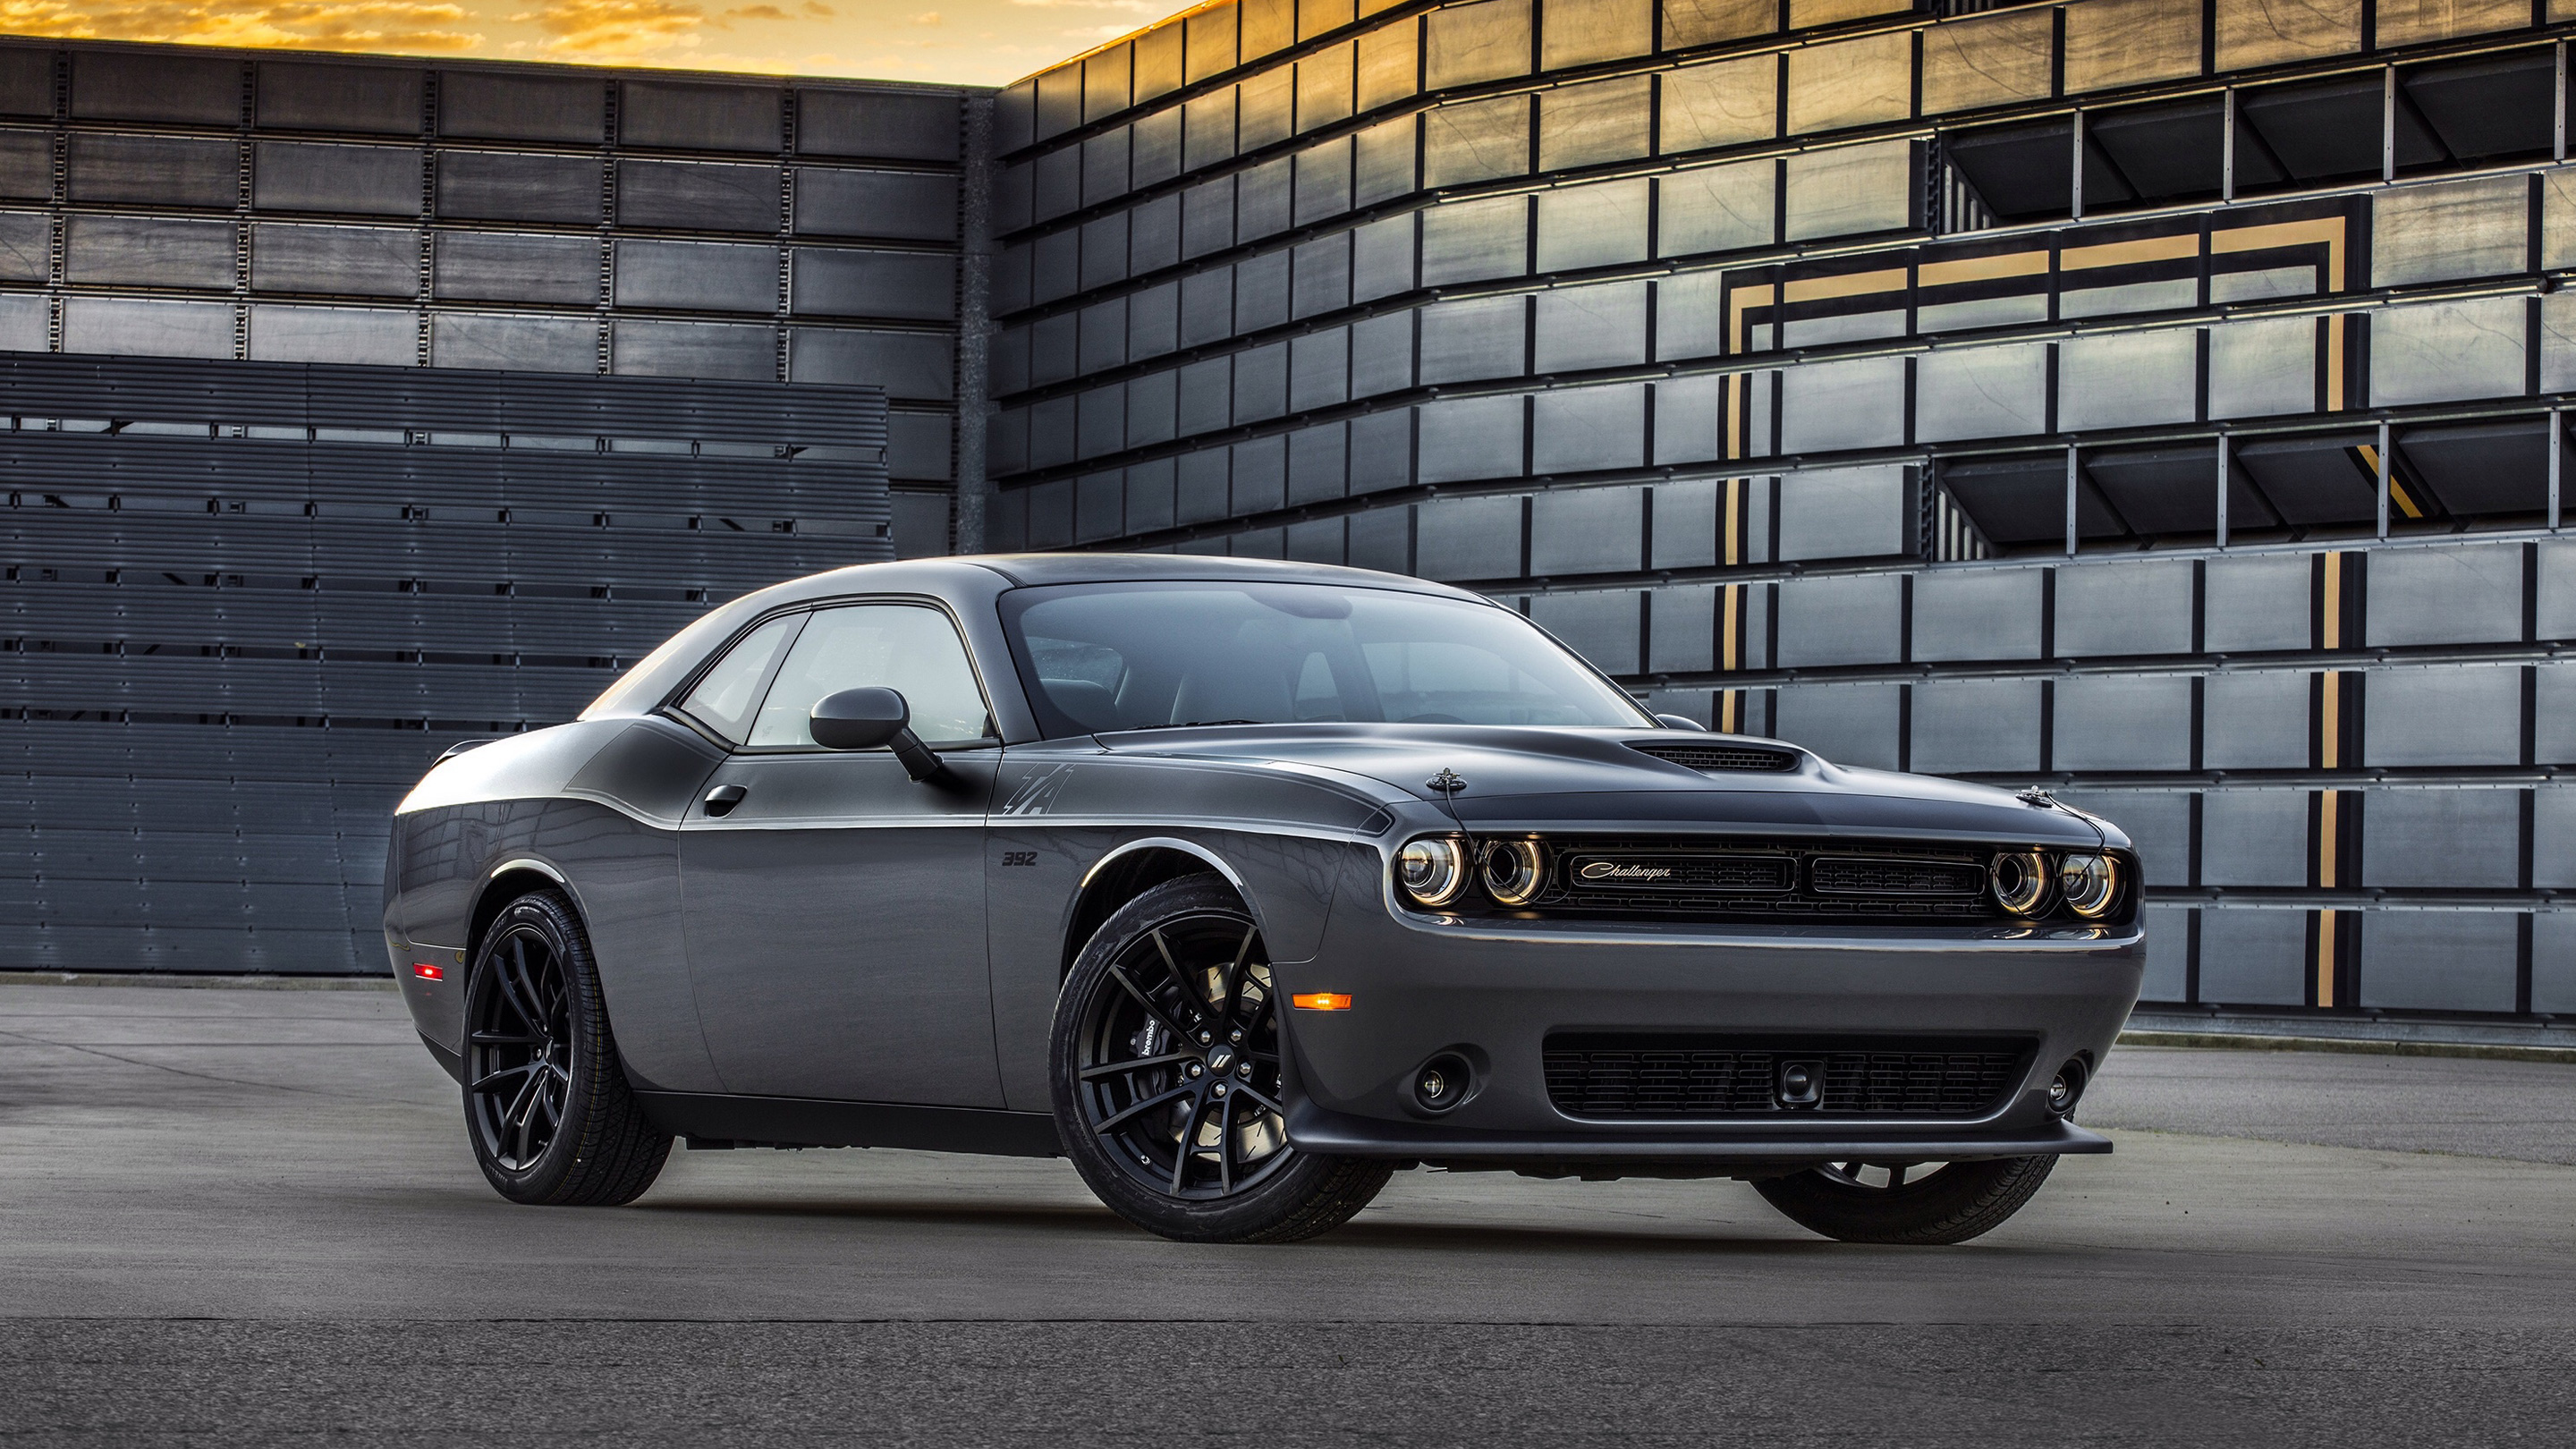 2017 Dodge Challenger Ta Wallpaper Hd Car Wallpapers Id 7059